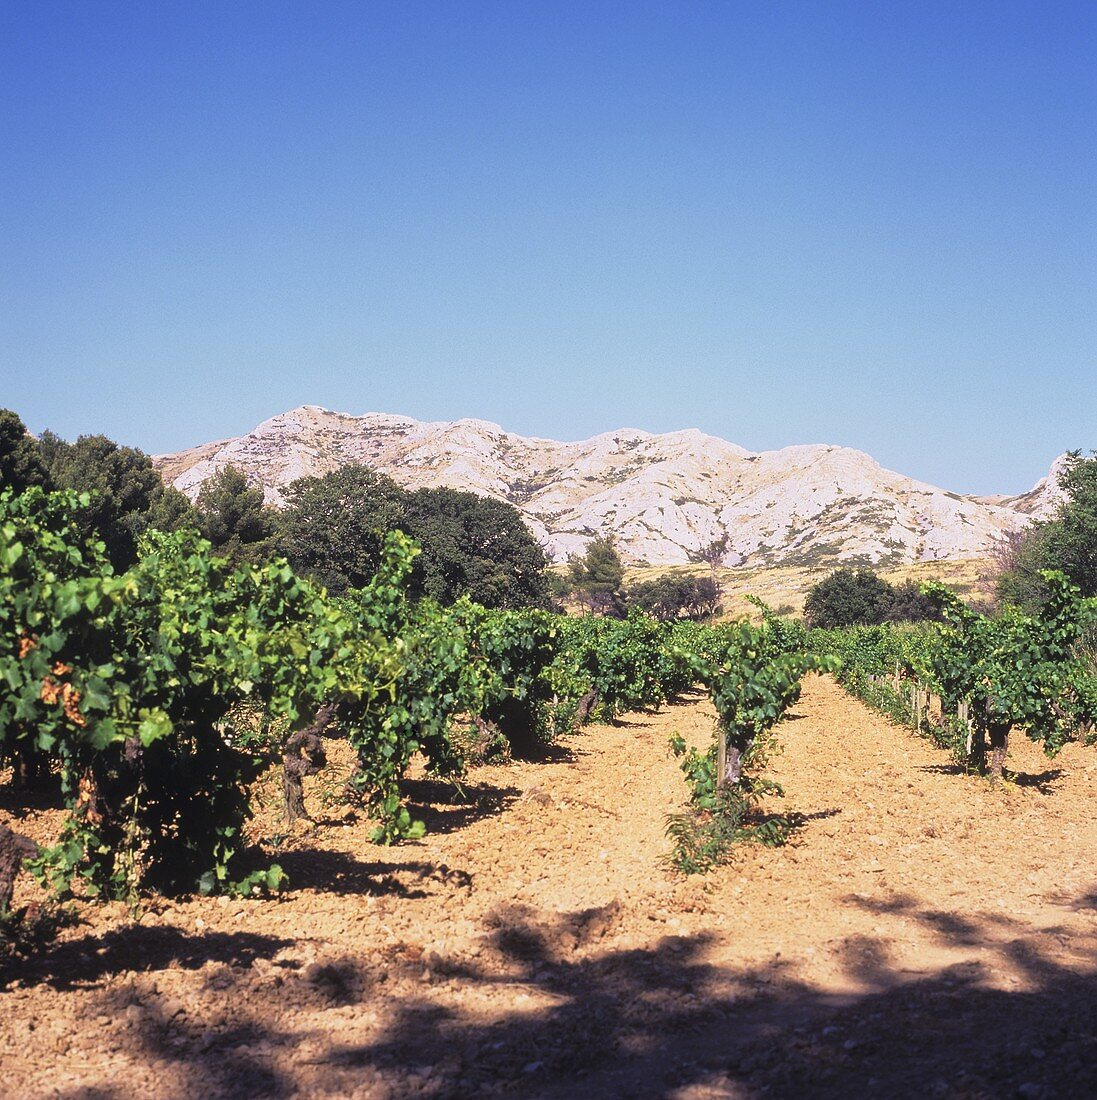 Vineyard in Les Baux-de-Provence district, Rhone, France